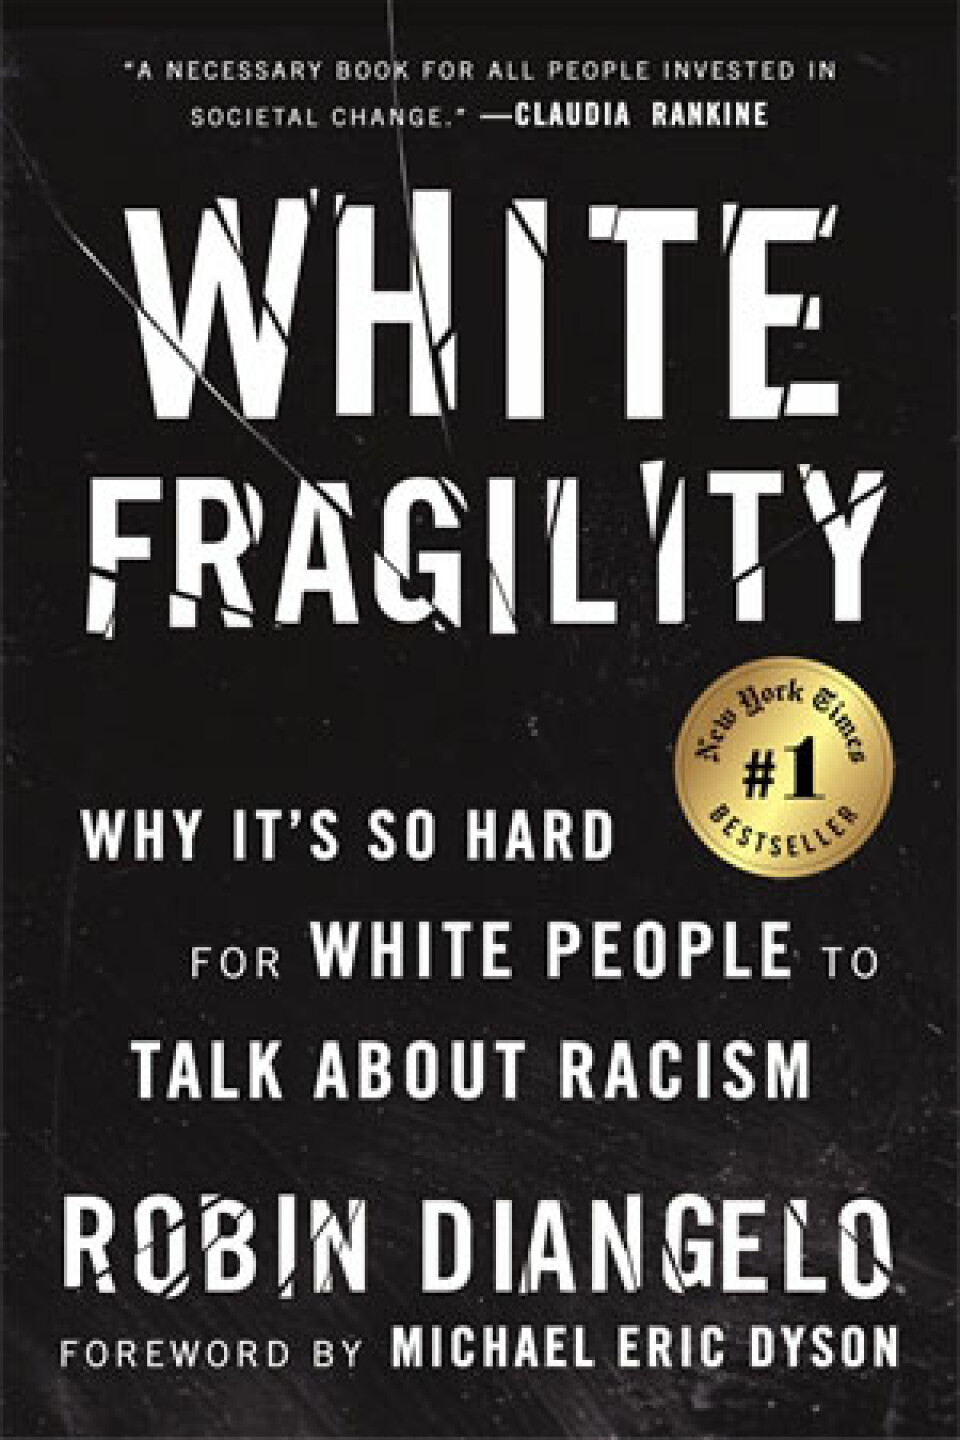 Talking About Racism — Morning Study